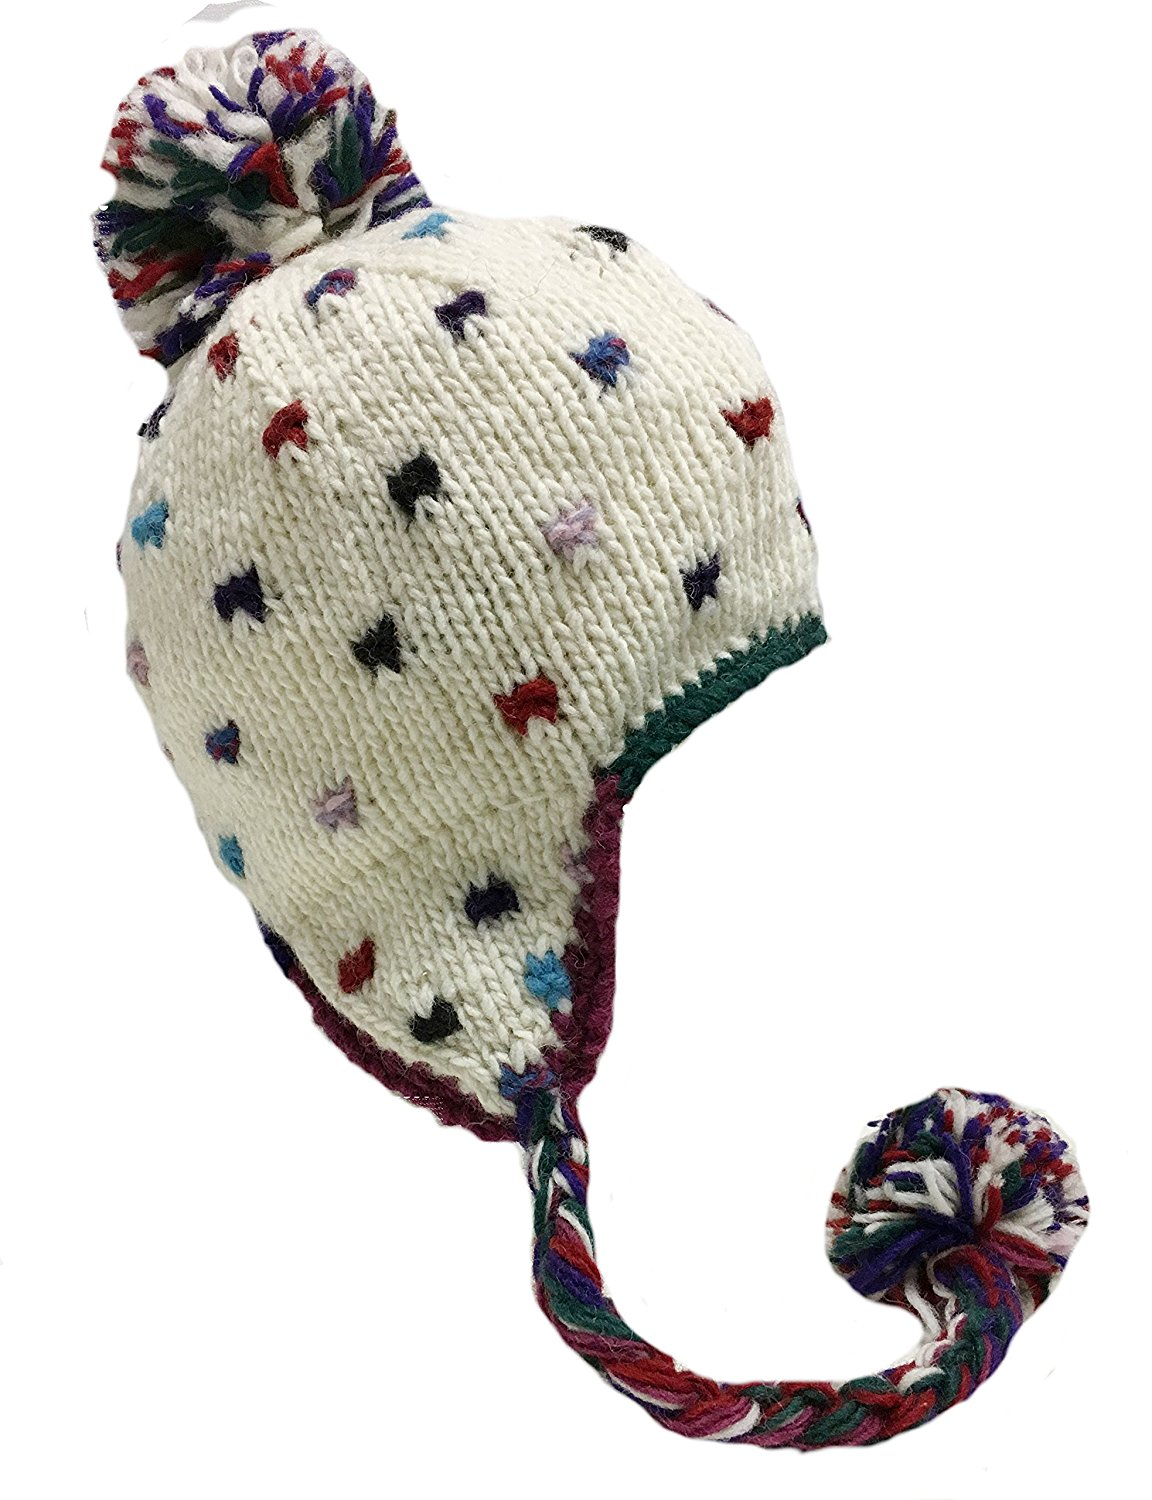 Nepal Hand Knit Sherpa Hat with Ear Flaps - fishingnew